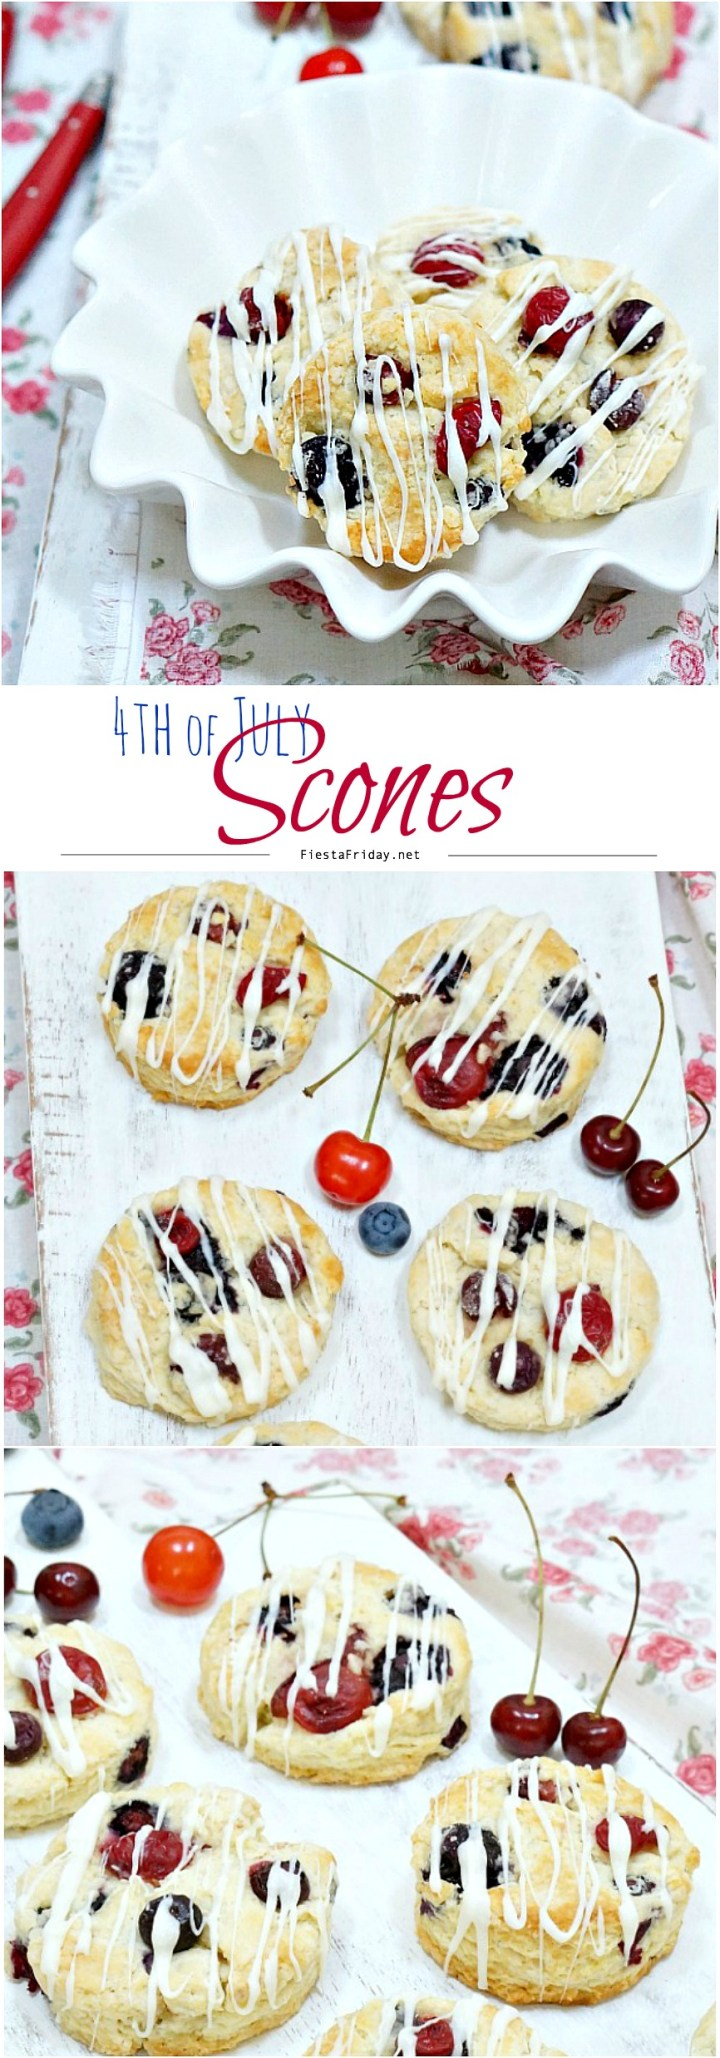 4th of july scones | fiestafriday.net